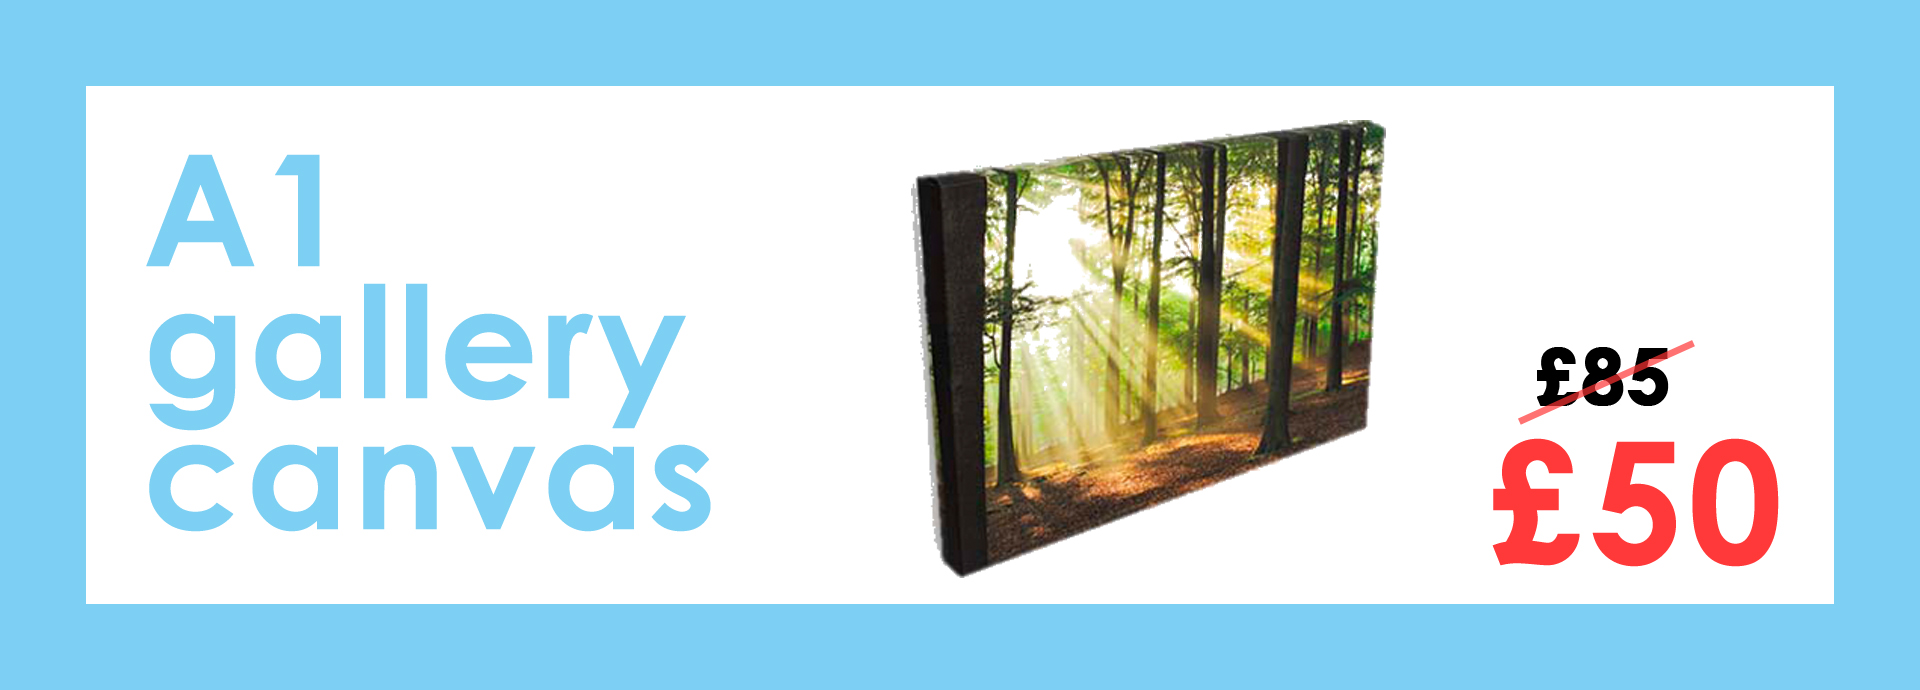 A1 Gallery Canvas Offers